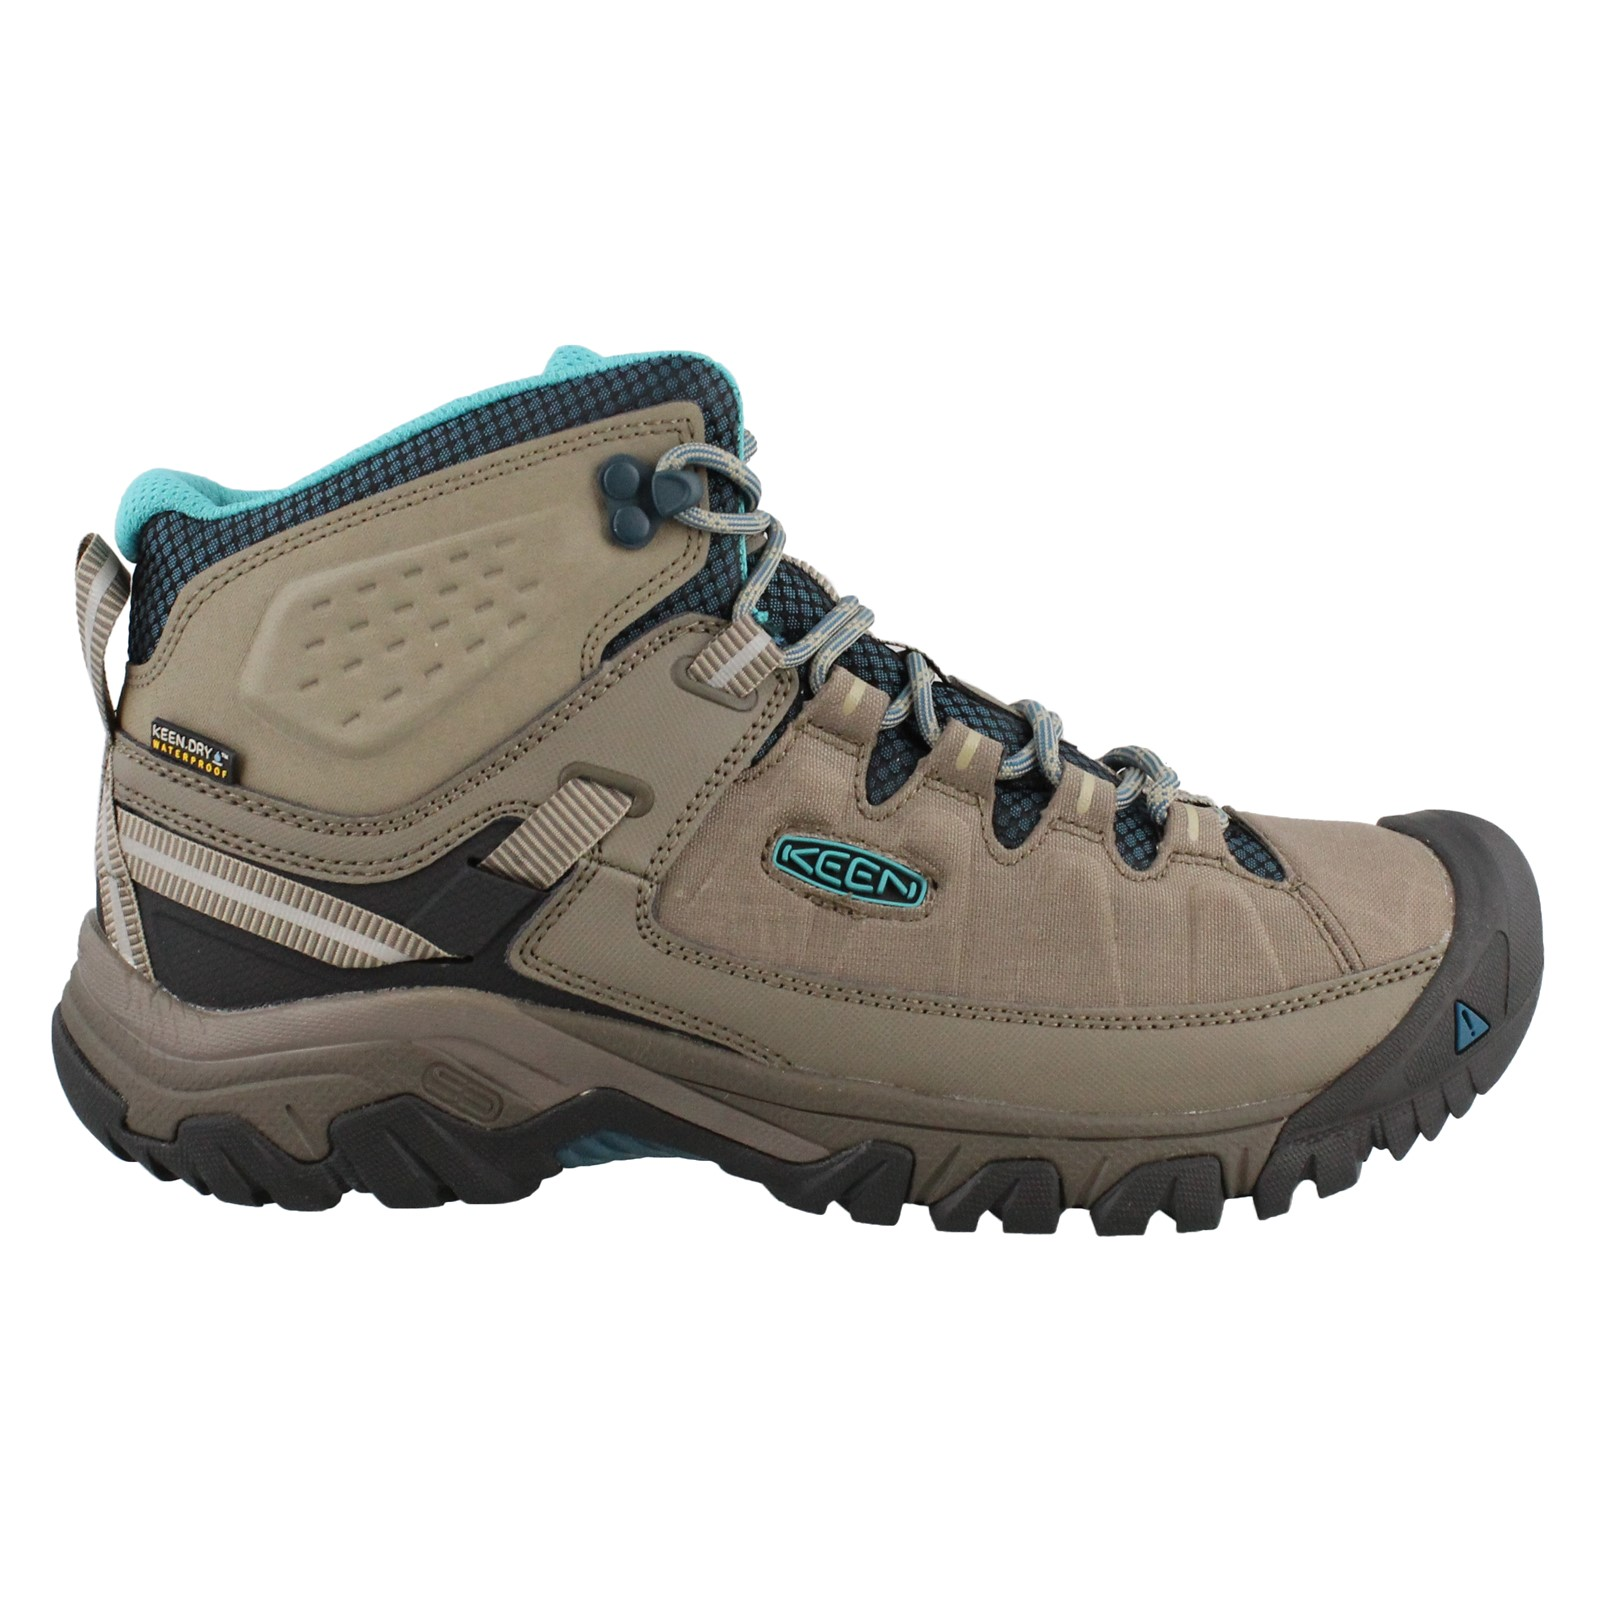 Women's Keen, Targhee Exp Mid Waterproof Hiking Boots